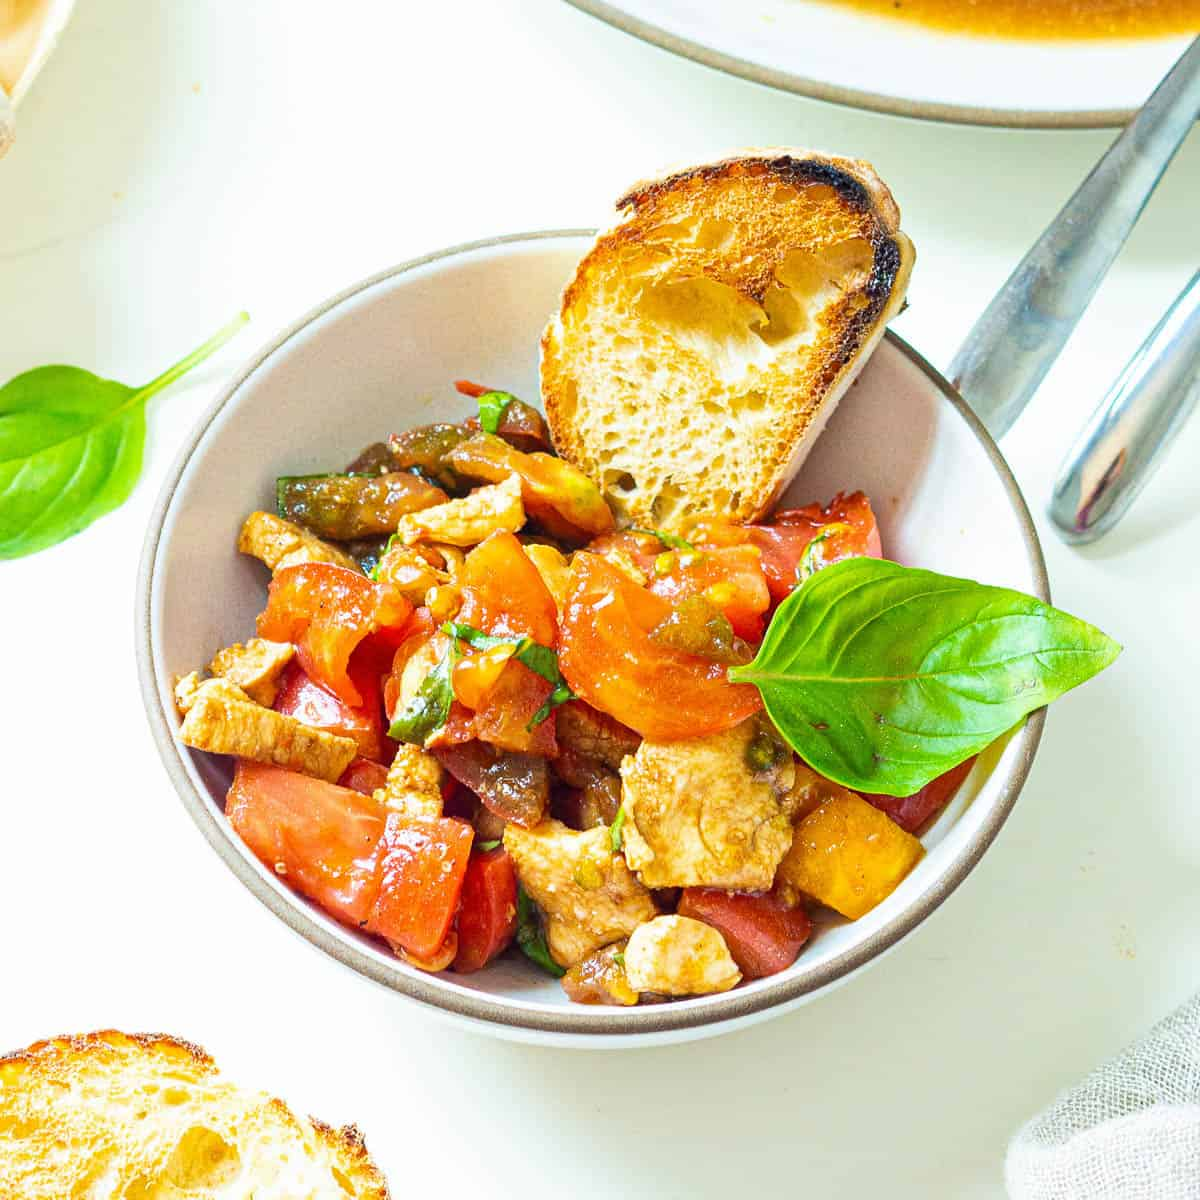 A bowl of marinated and chopped caprese salad with toasted bread